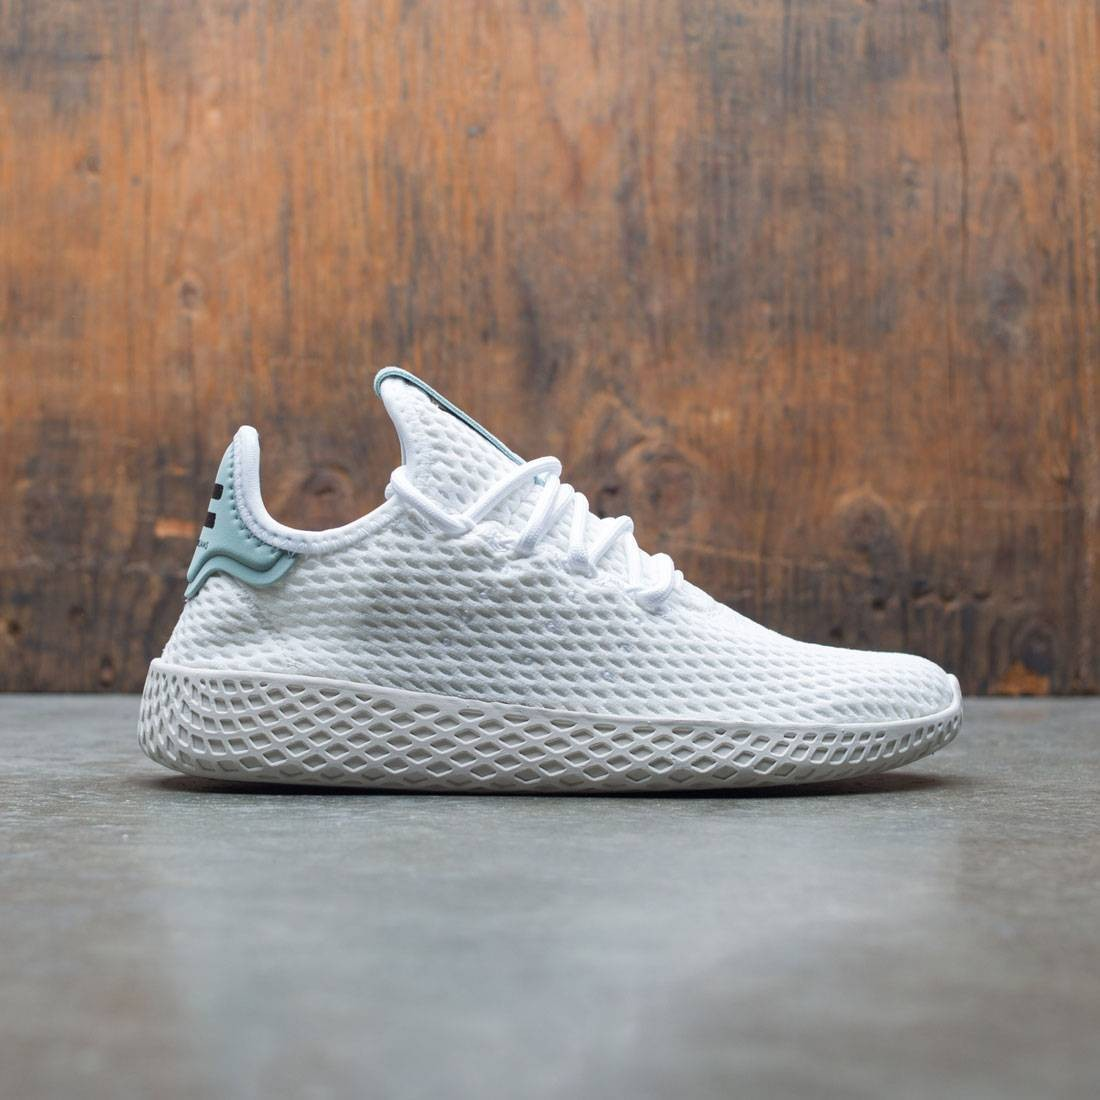 Adidas x Pharrell Williams Big Kids Tennis HU J (white / footwear white / tactile green)